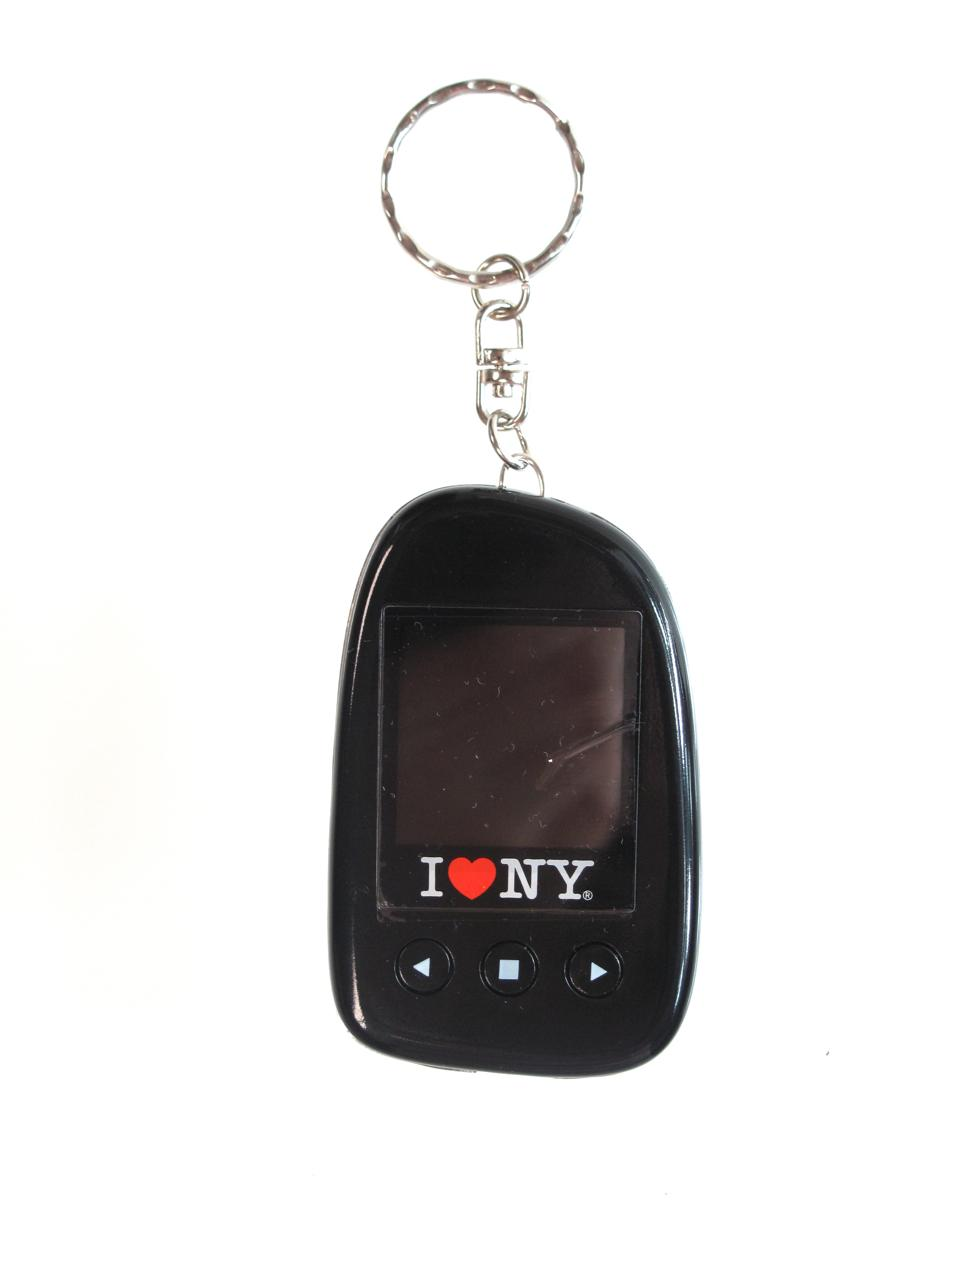 "I Love NY DPV151 1.5"" Digital Photo Keychain Hold up to 107 Photos - Black"